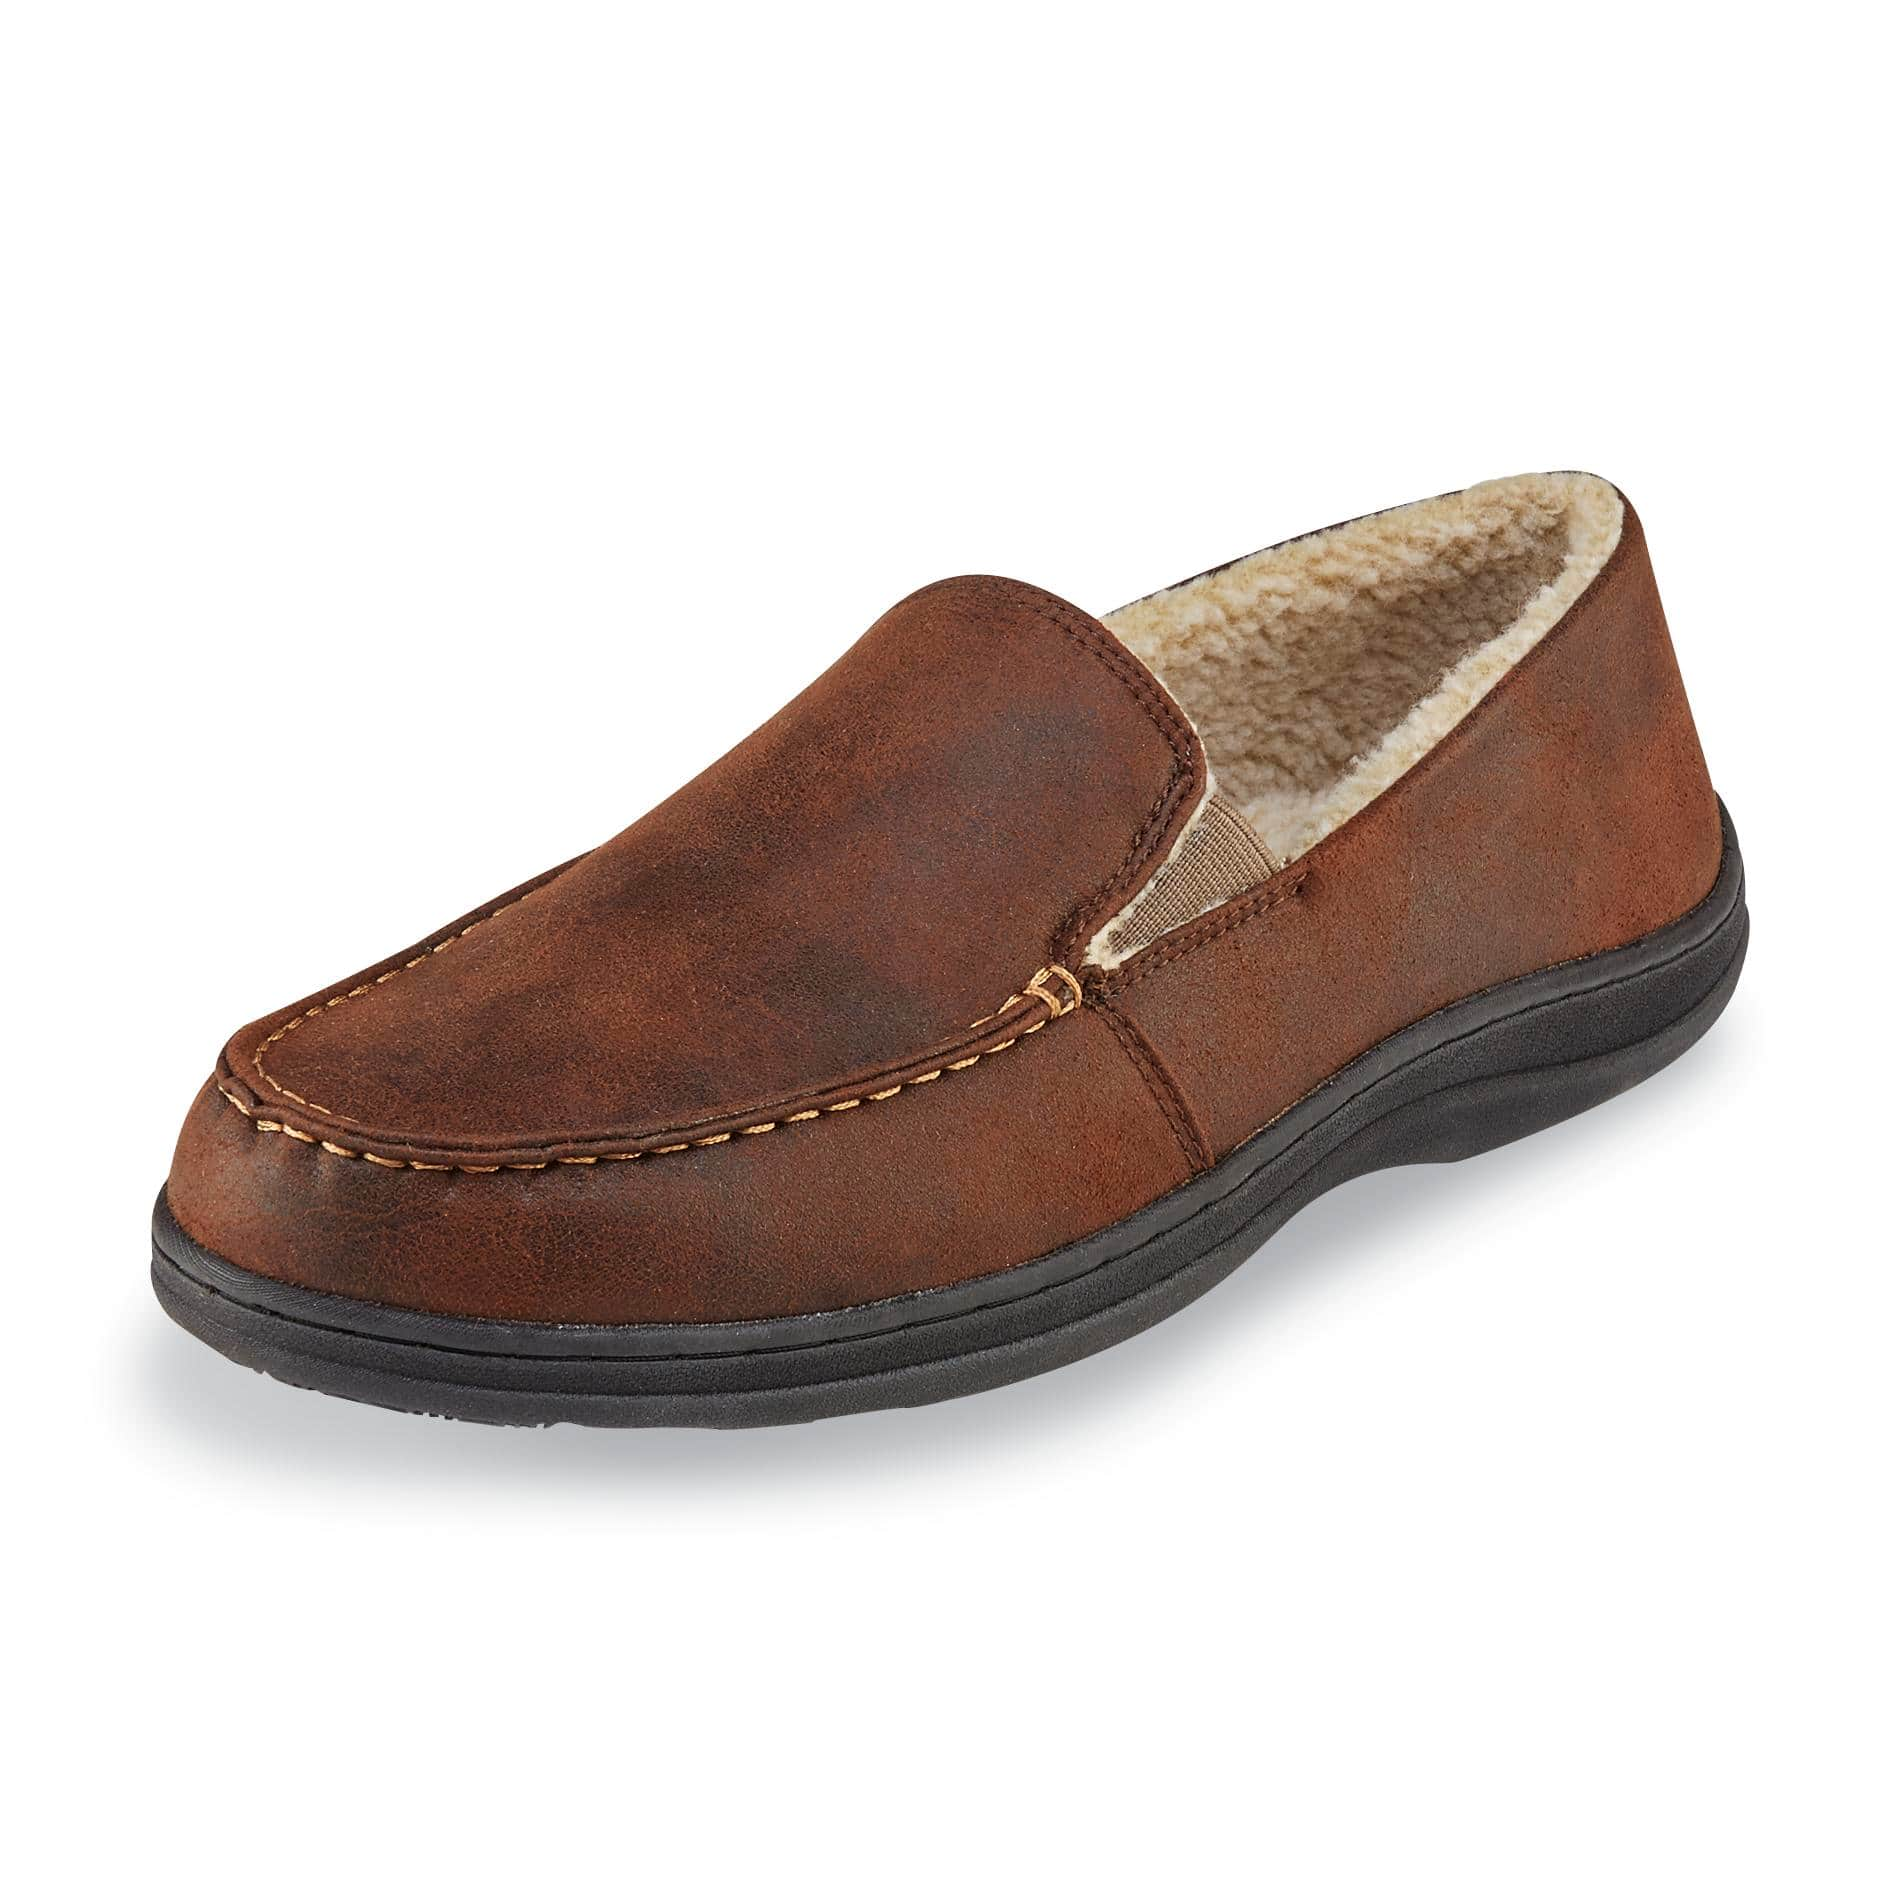 best cheap where to buy where can i buy Craftsman men's slippers $5.39 free pickup Kmart - Slickdeals.net